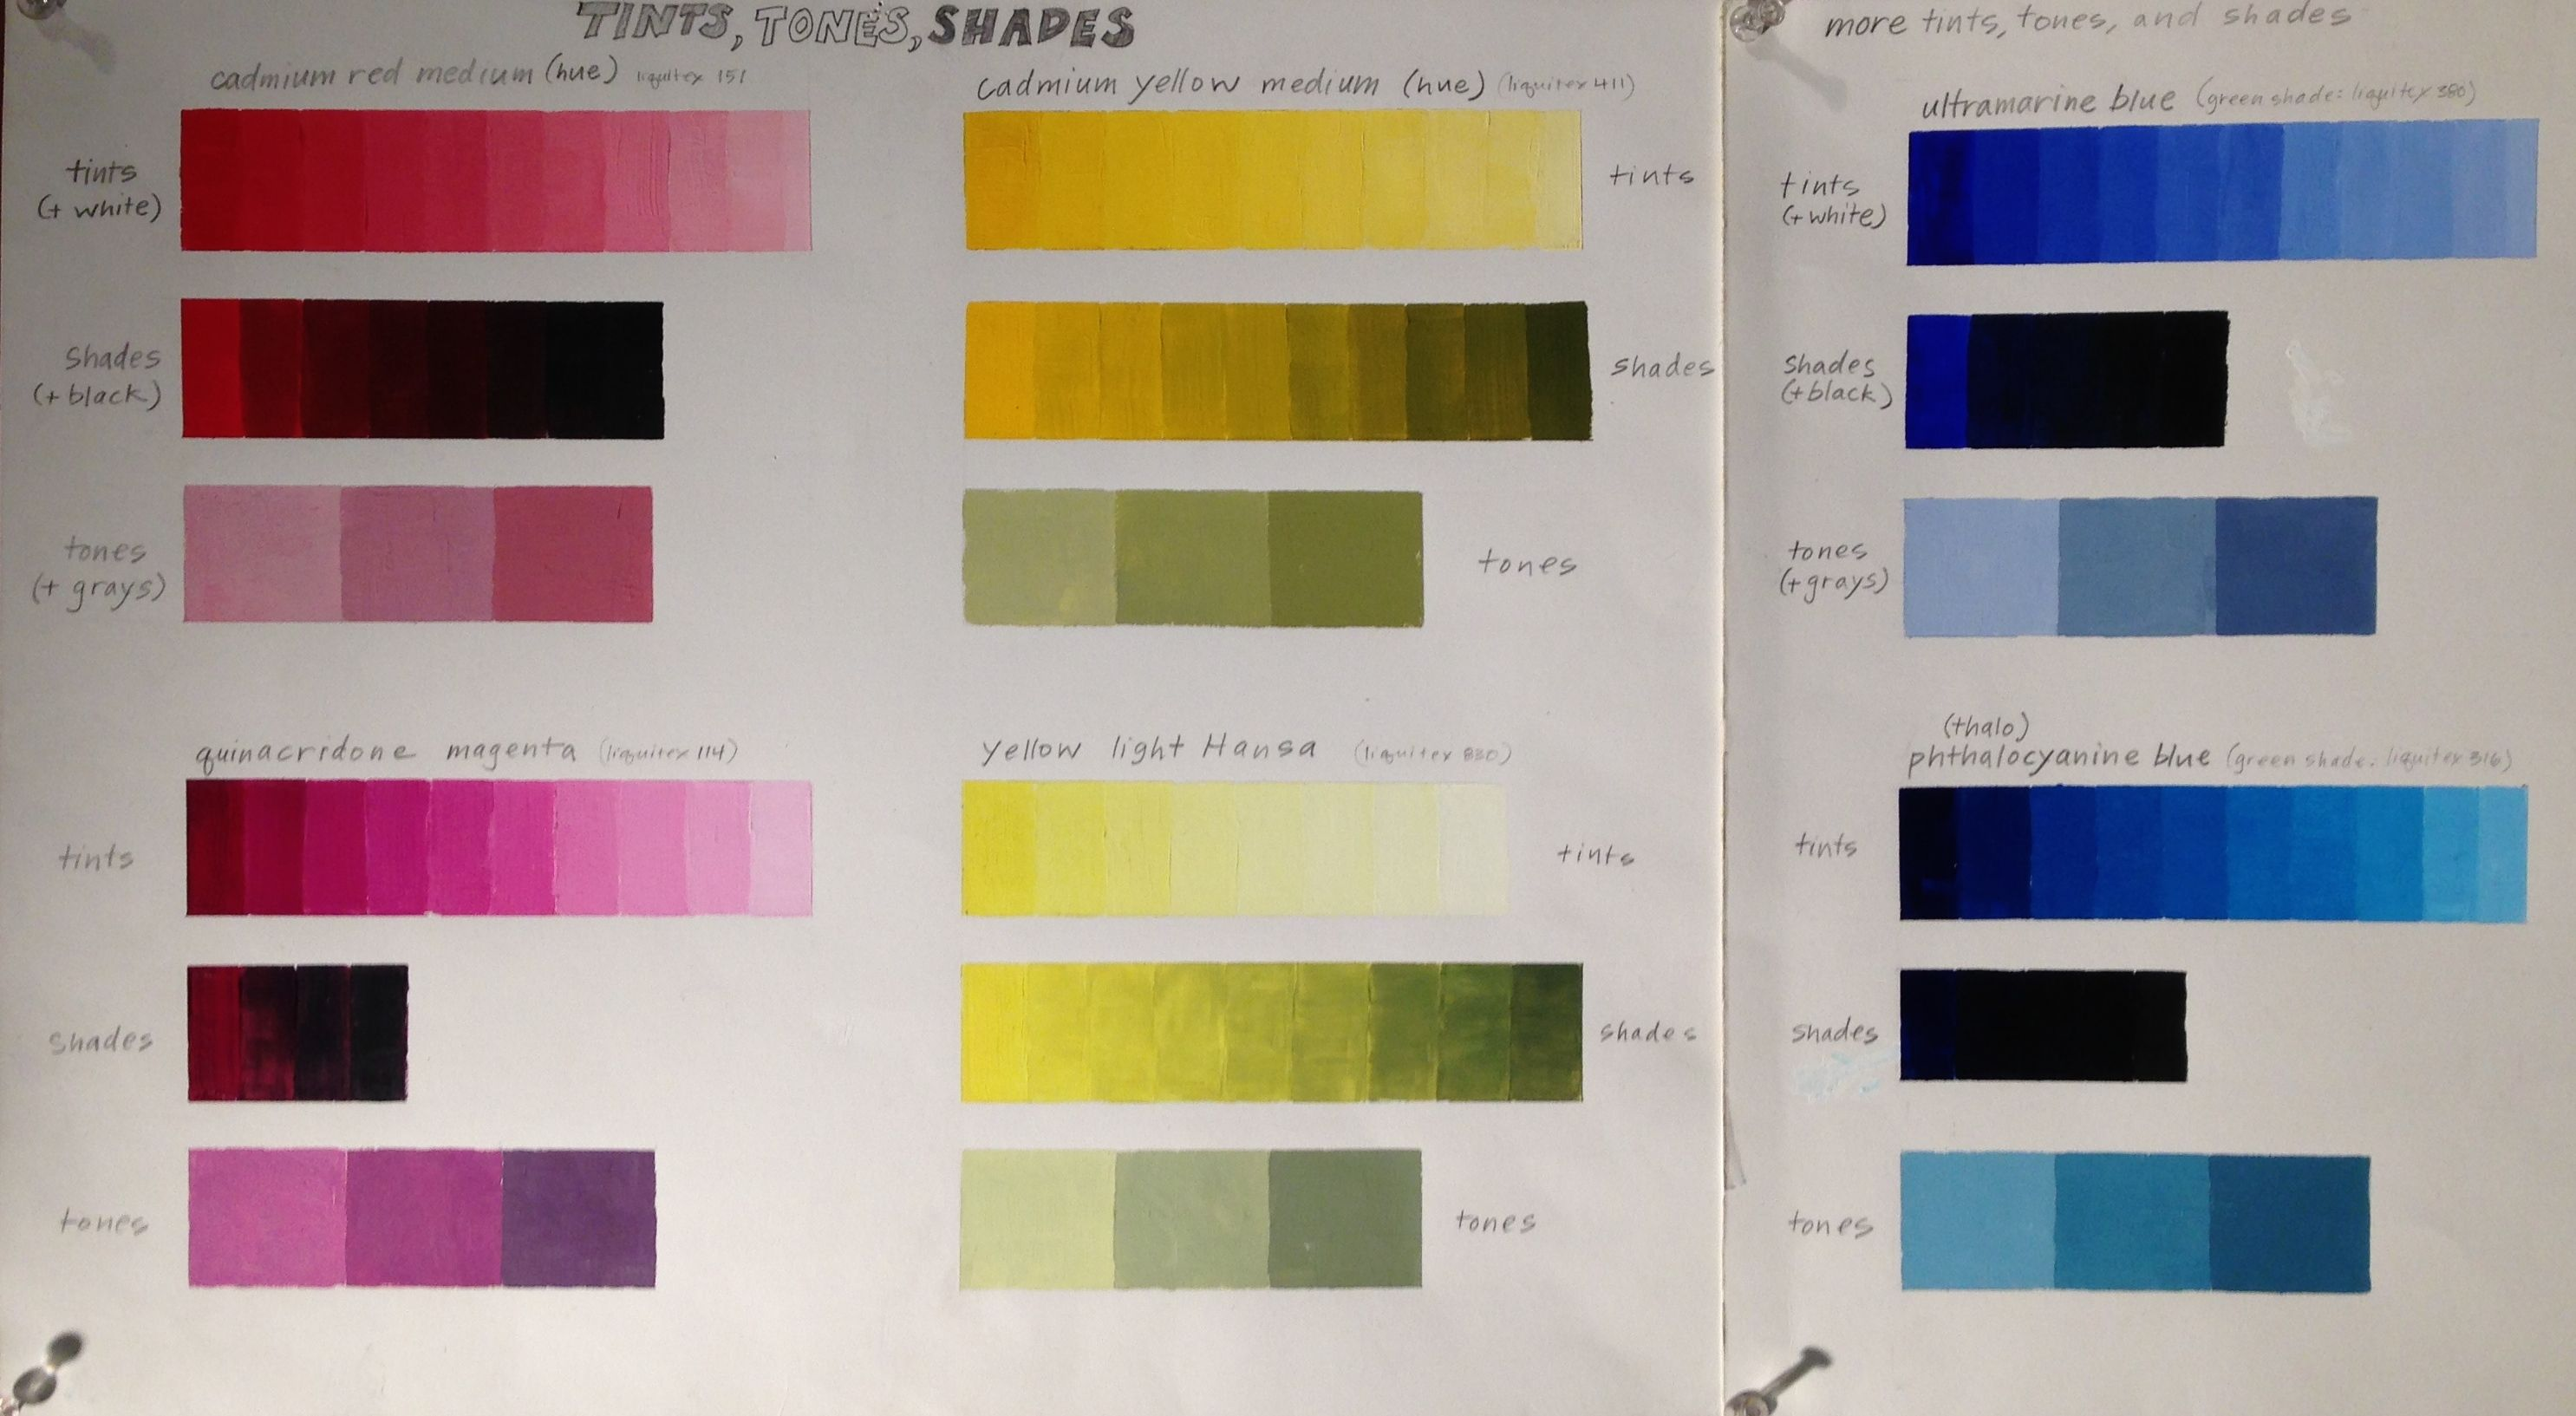 Srjc Tints Tones Shades Chart Of Six Colors Chart Tints Color